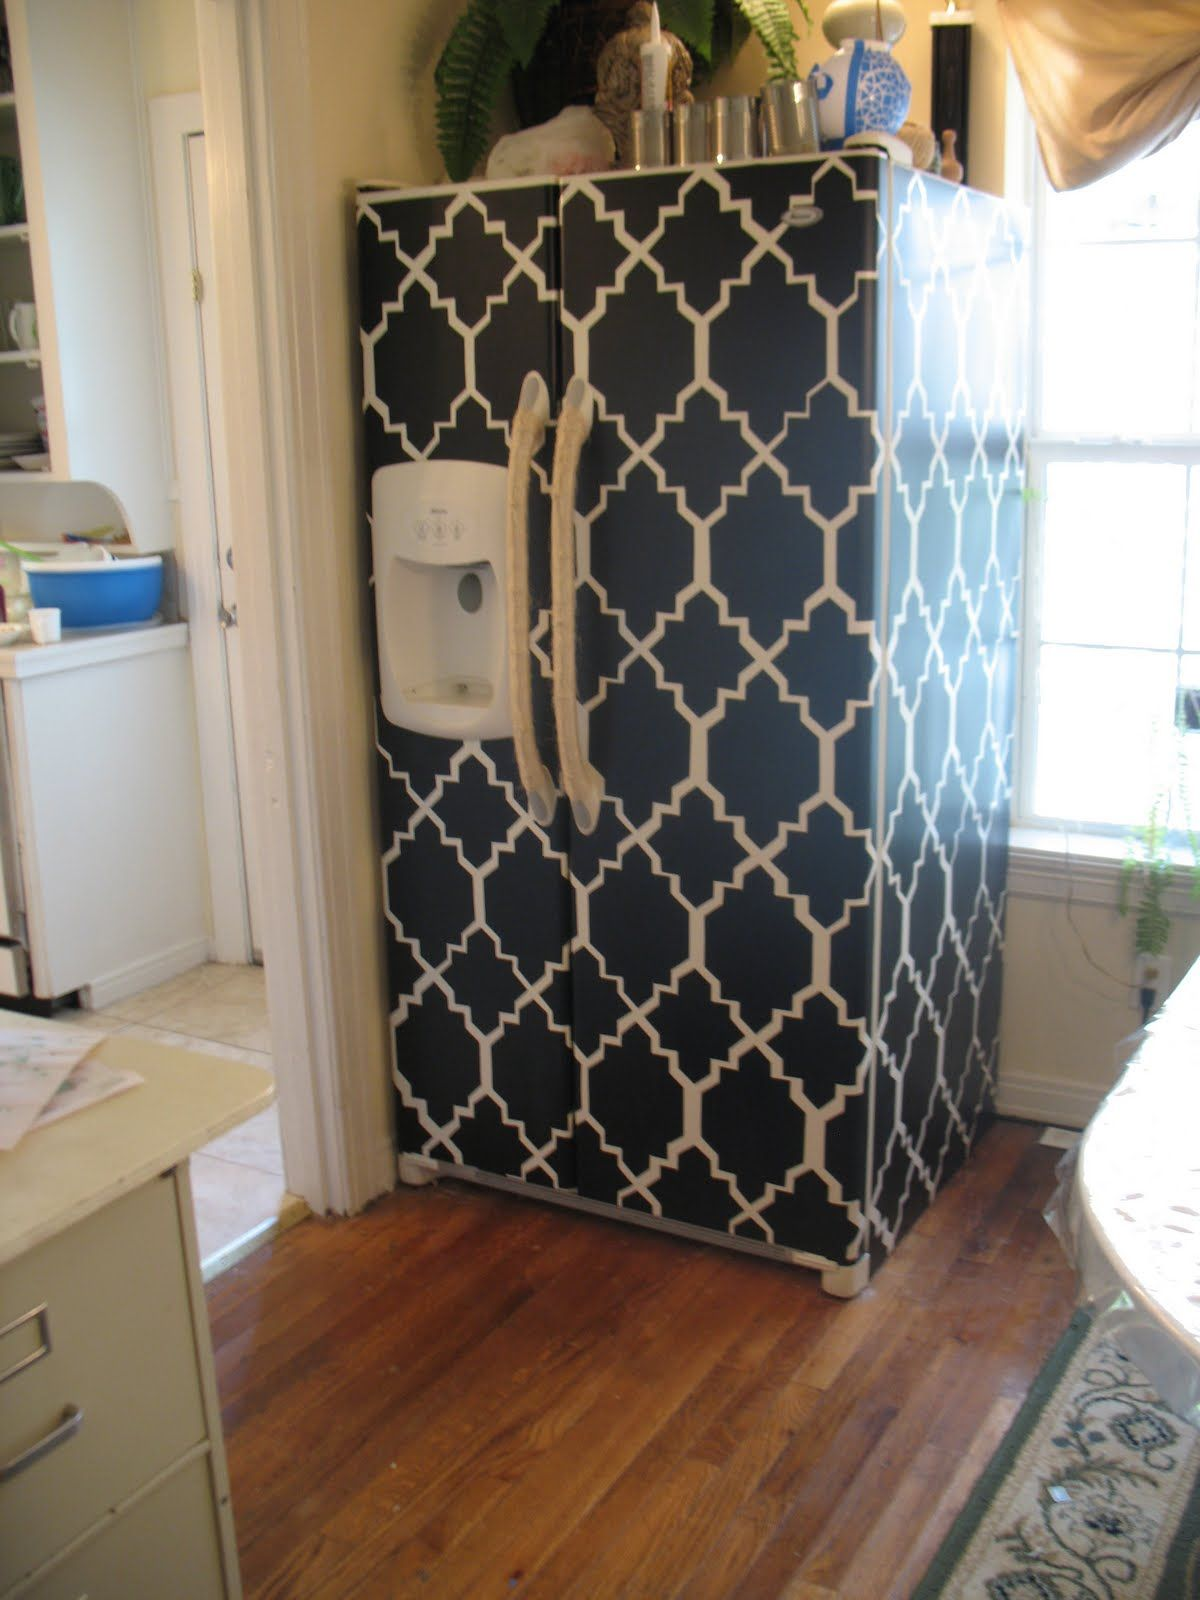 Ugly old fridge Cover it A cheap way to remodel using contact